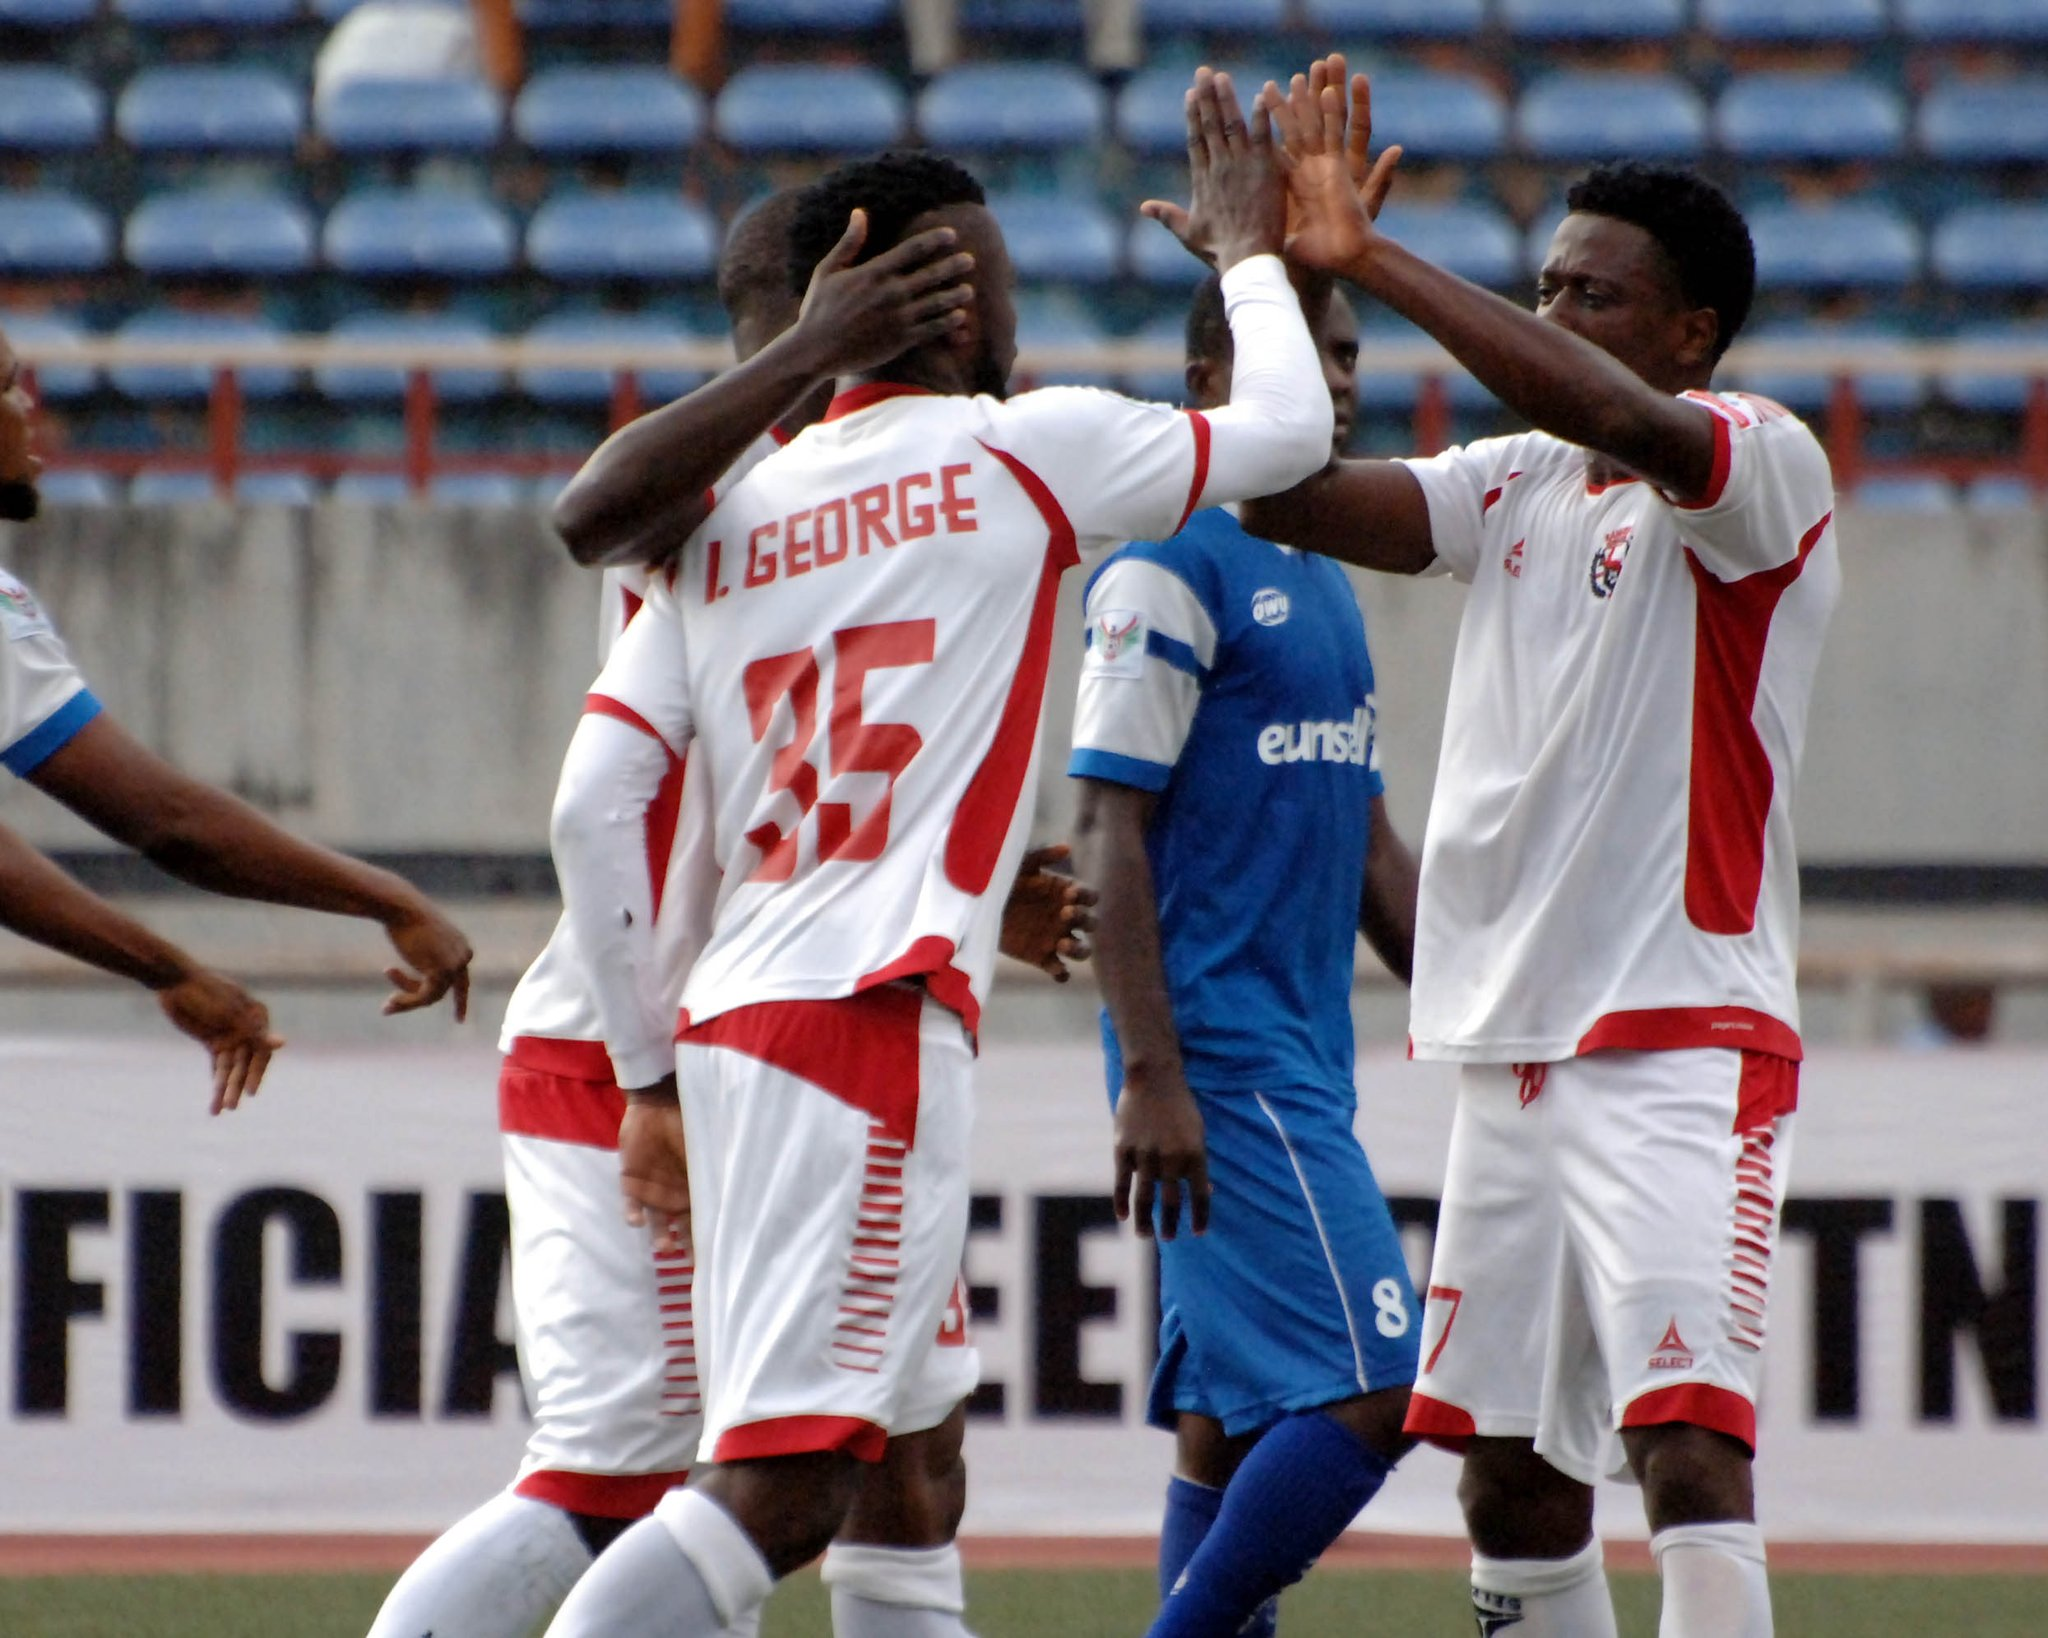 NPFL: Rangers Edge Rivers United, Leave Relegation Zone